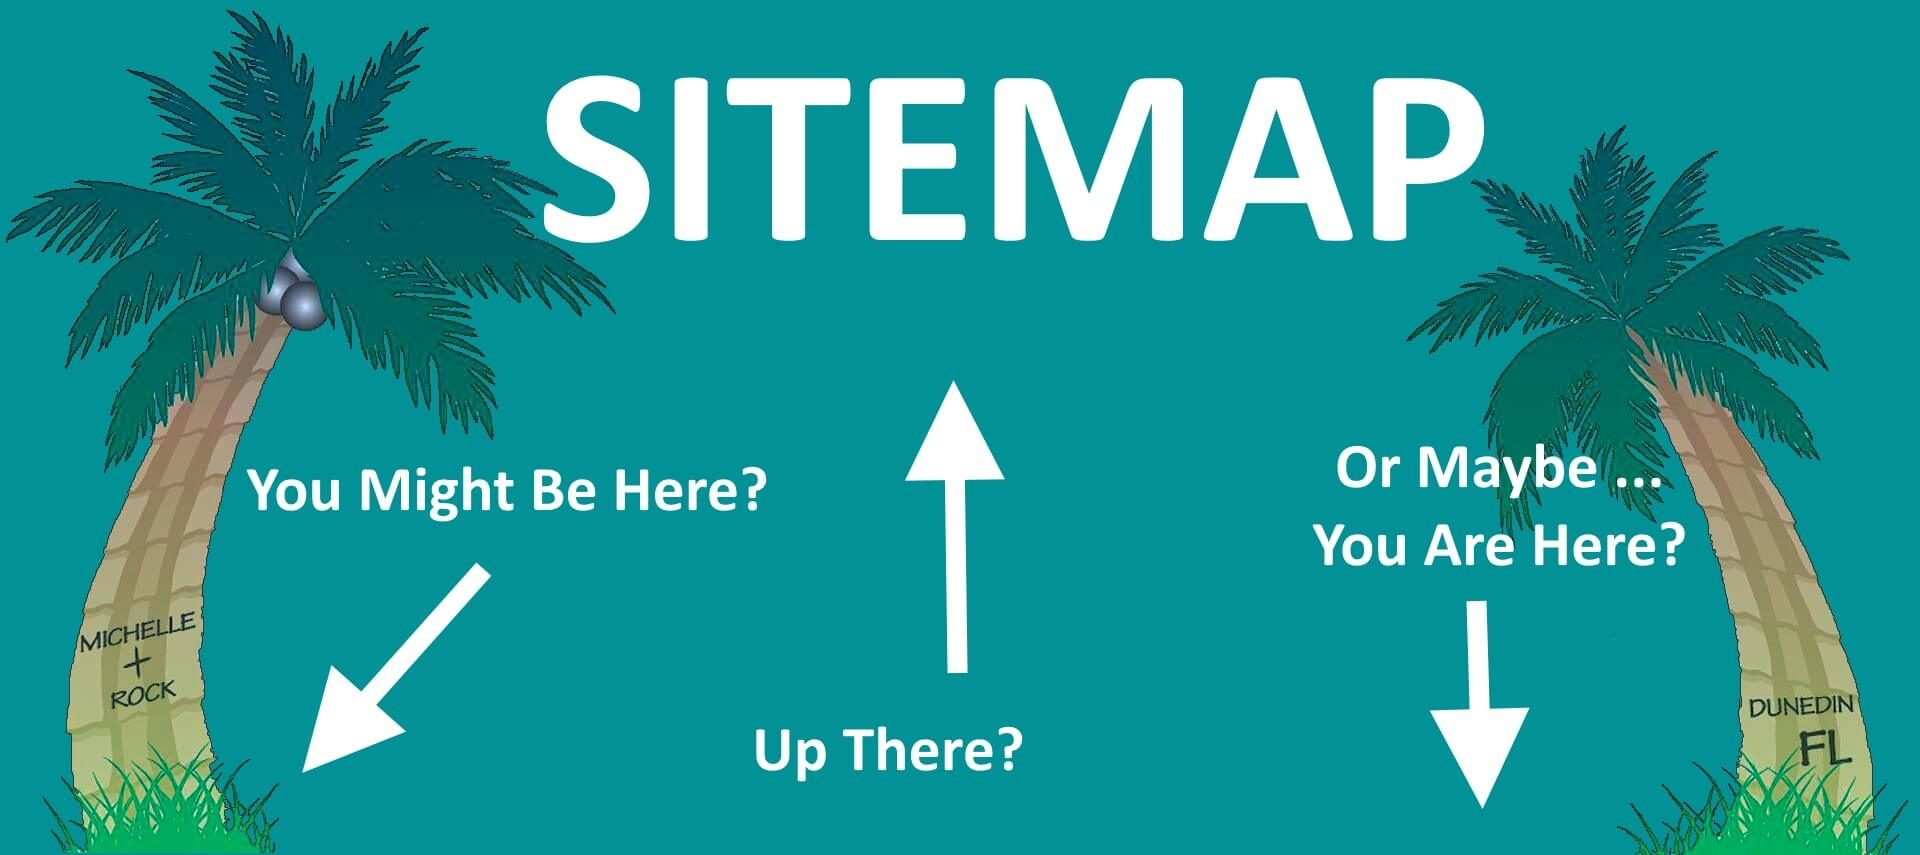 Teal background with palm trees - text : SITEMAP with arrows.